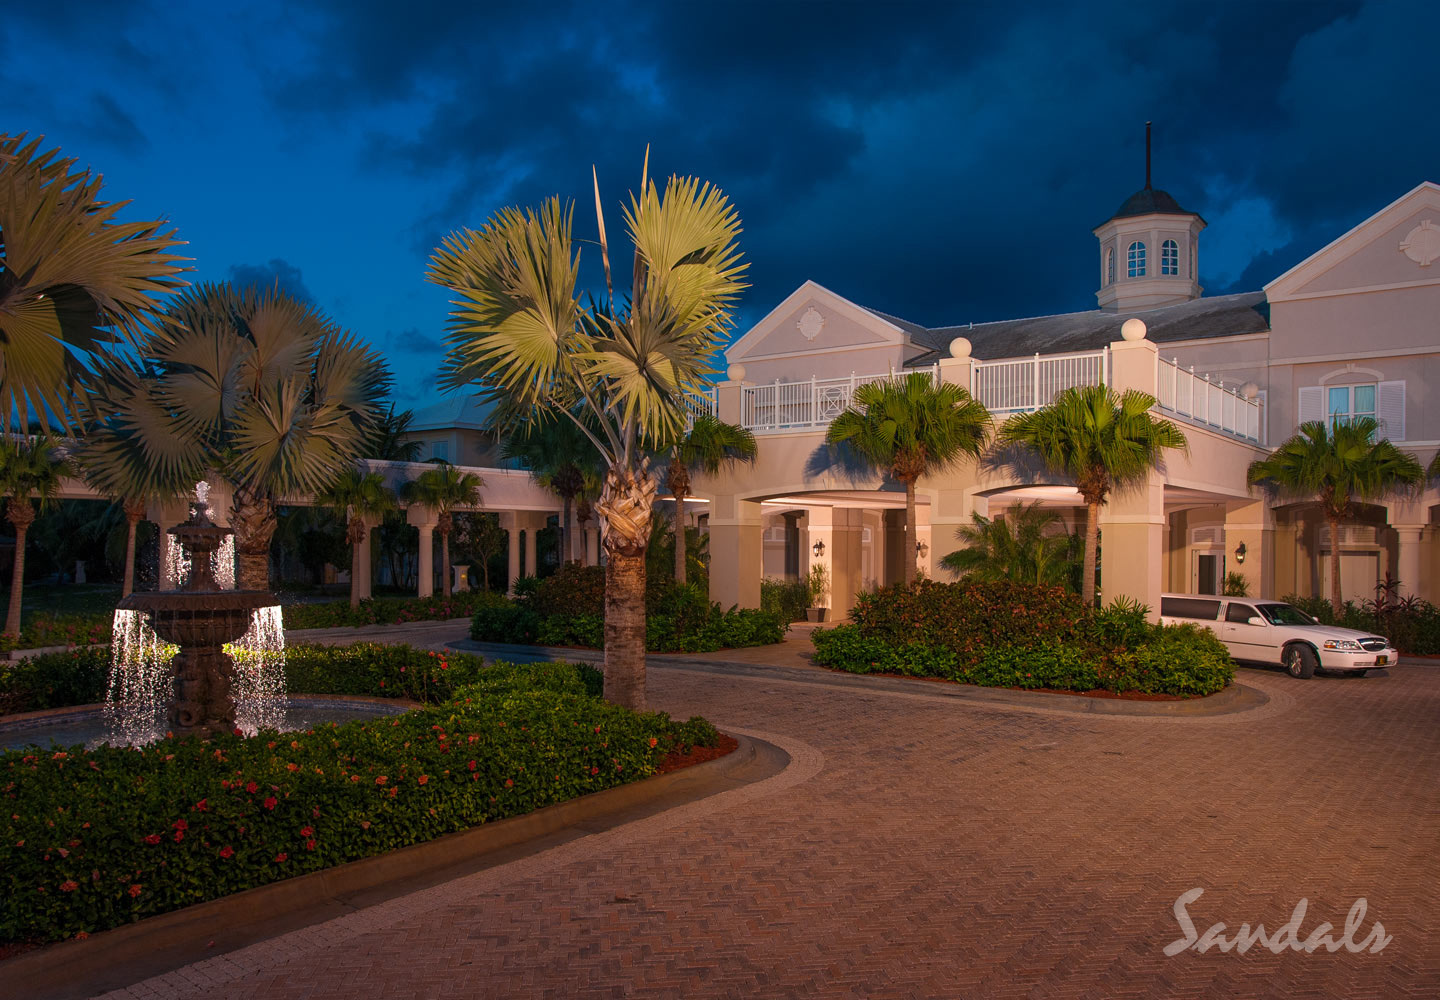 Travel Agency All-Inclusive Resort Sandals Emerald Bay 110